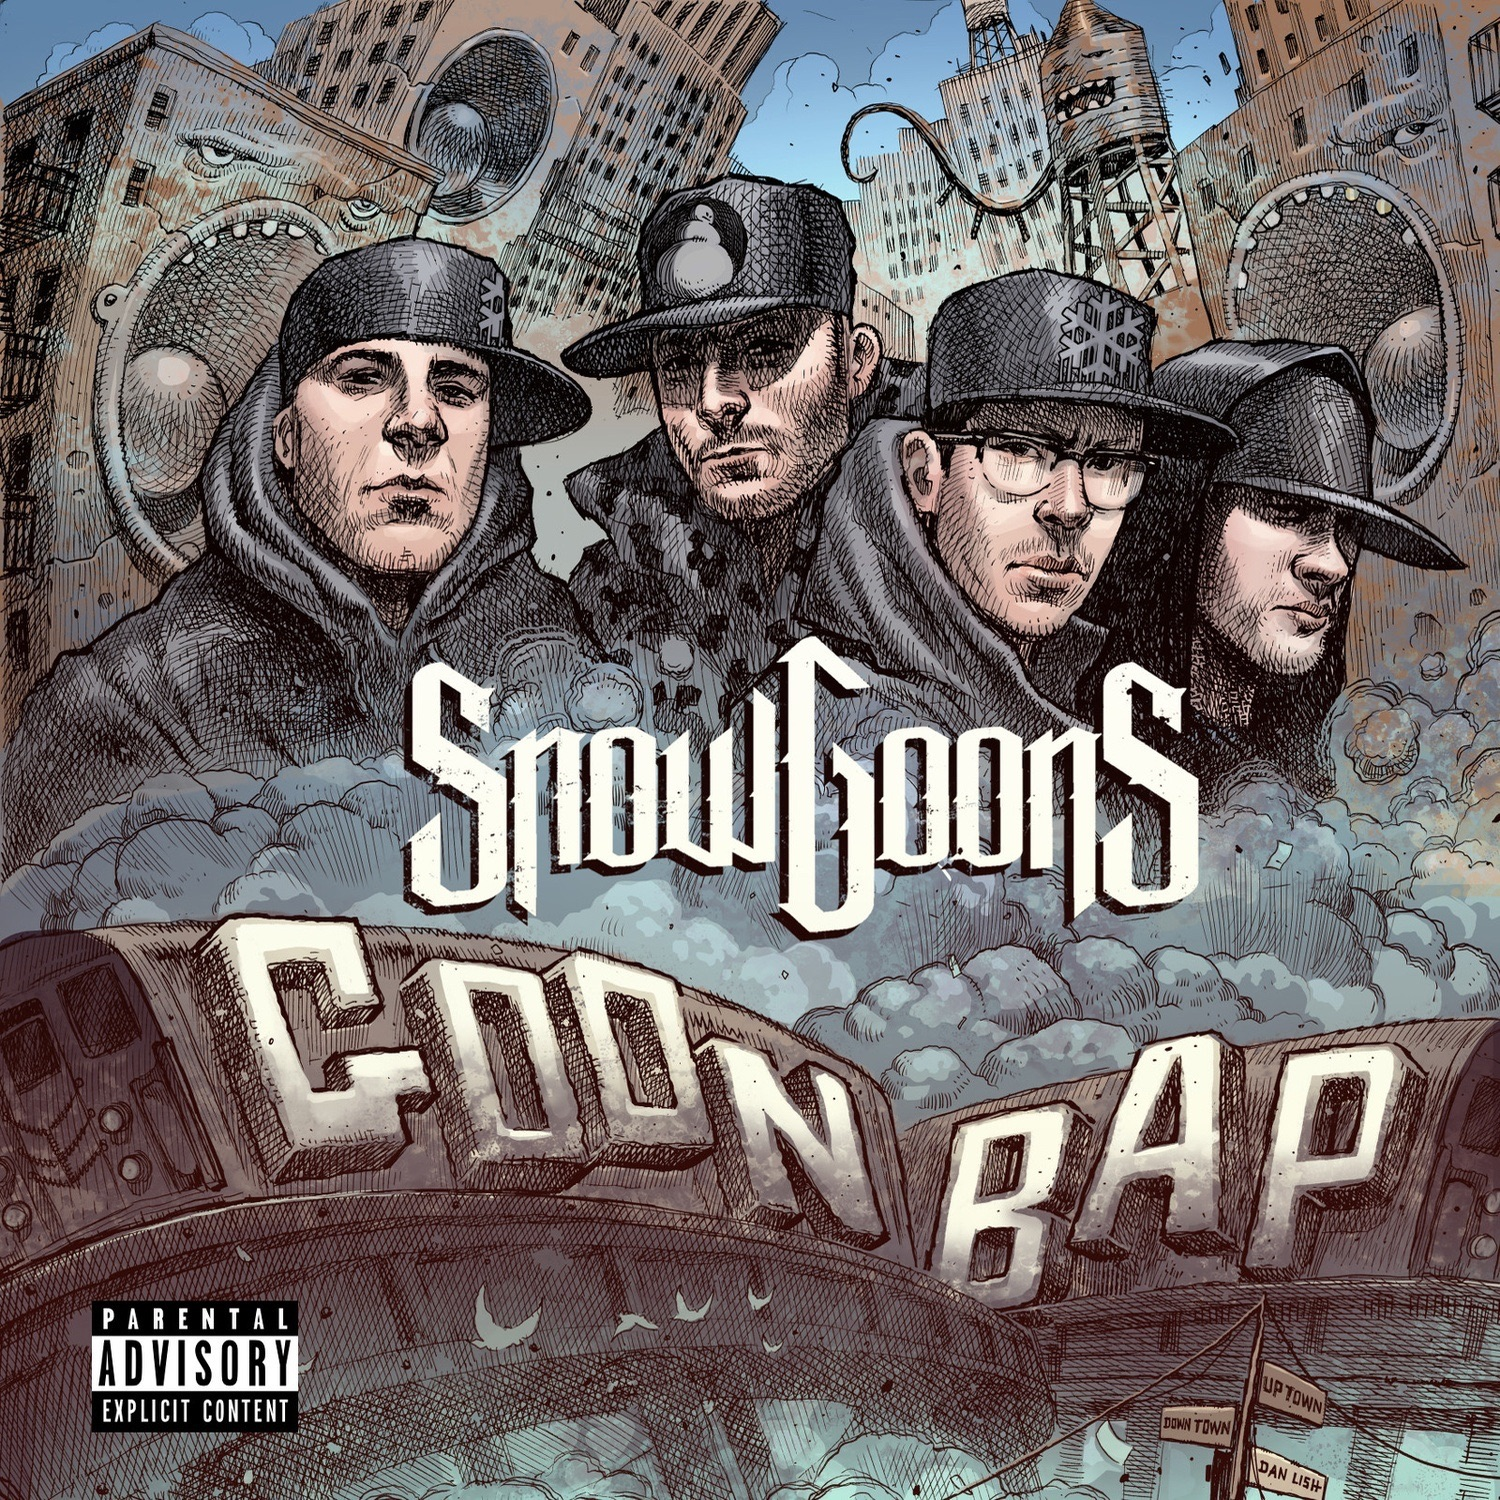 Snowgoons - New Kidz On The Bloc (feat. Token, TJ Brown, Big Kurt, Intell & Merkules)